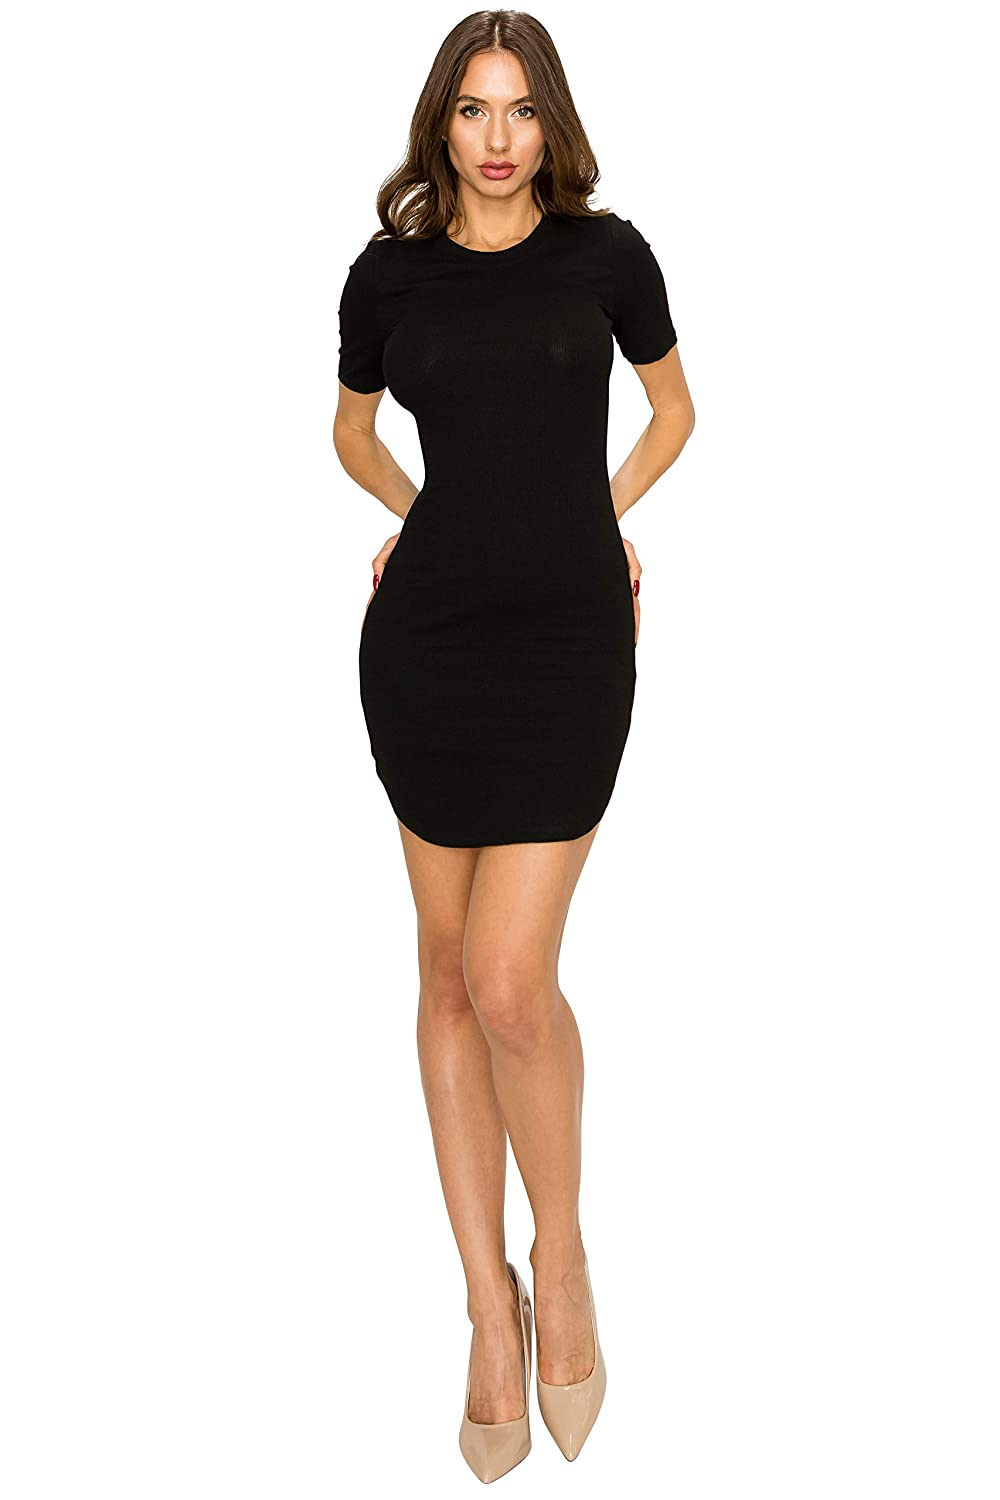 cedf27aa43d EttelLut Cocktail Sexy Club Party Dresses-Mini Rib Knit Tight Fit Women/ Juniors at Amazon Women's Clothing store: